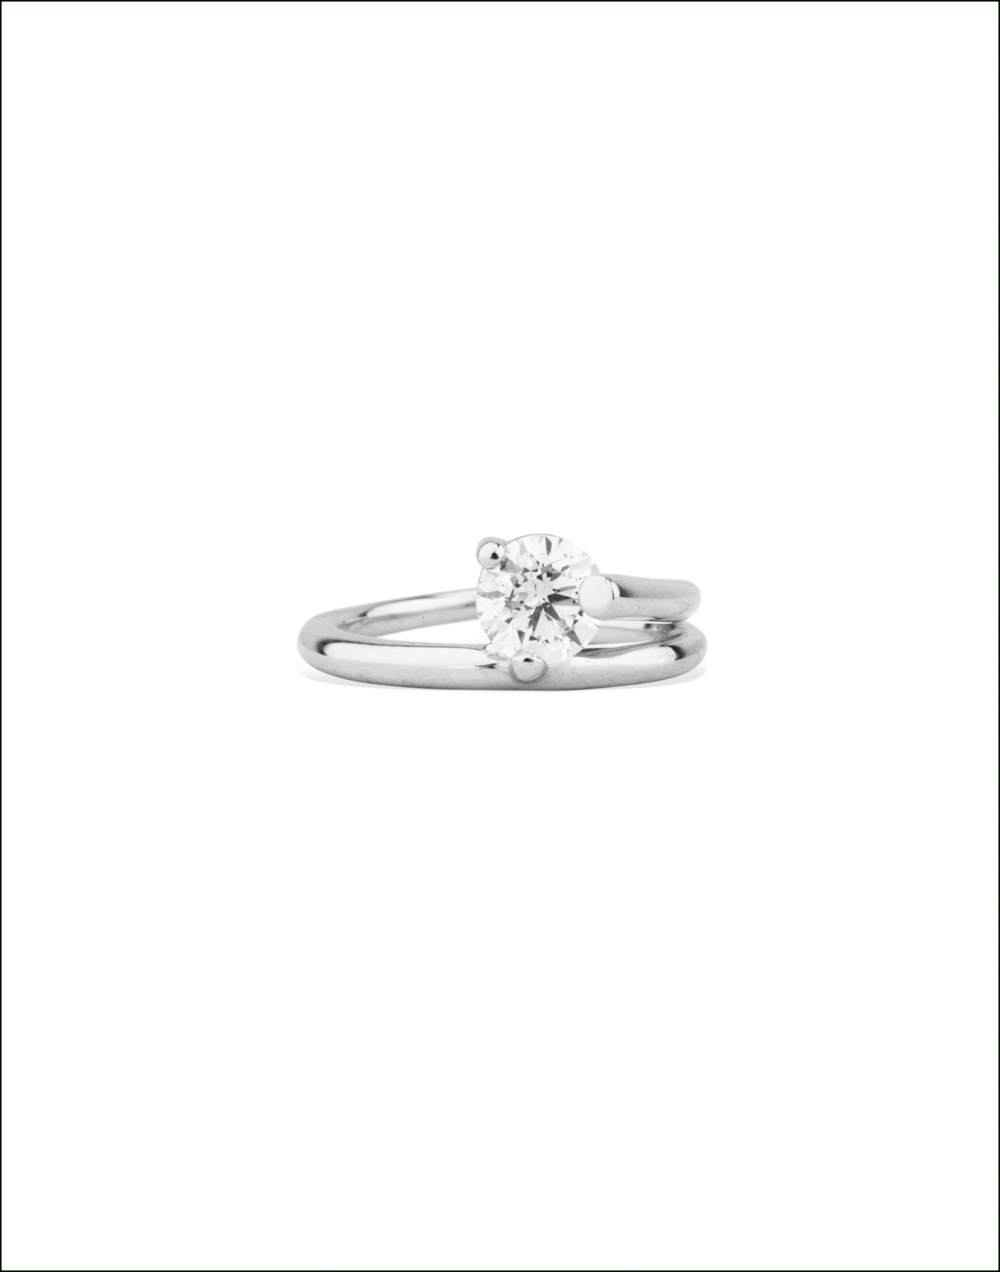 Completedworks-Subverted-Flower-Bridal-Ring-WHITE-GOLD-2-1.png